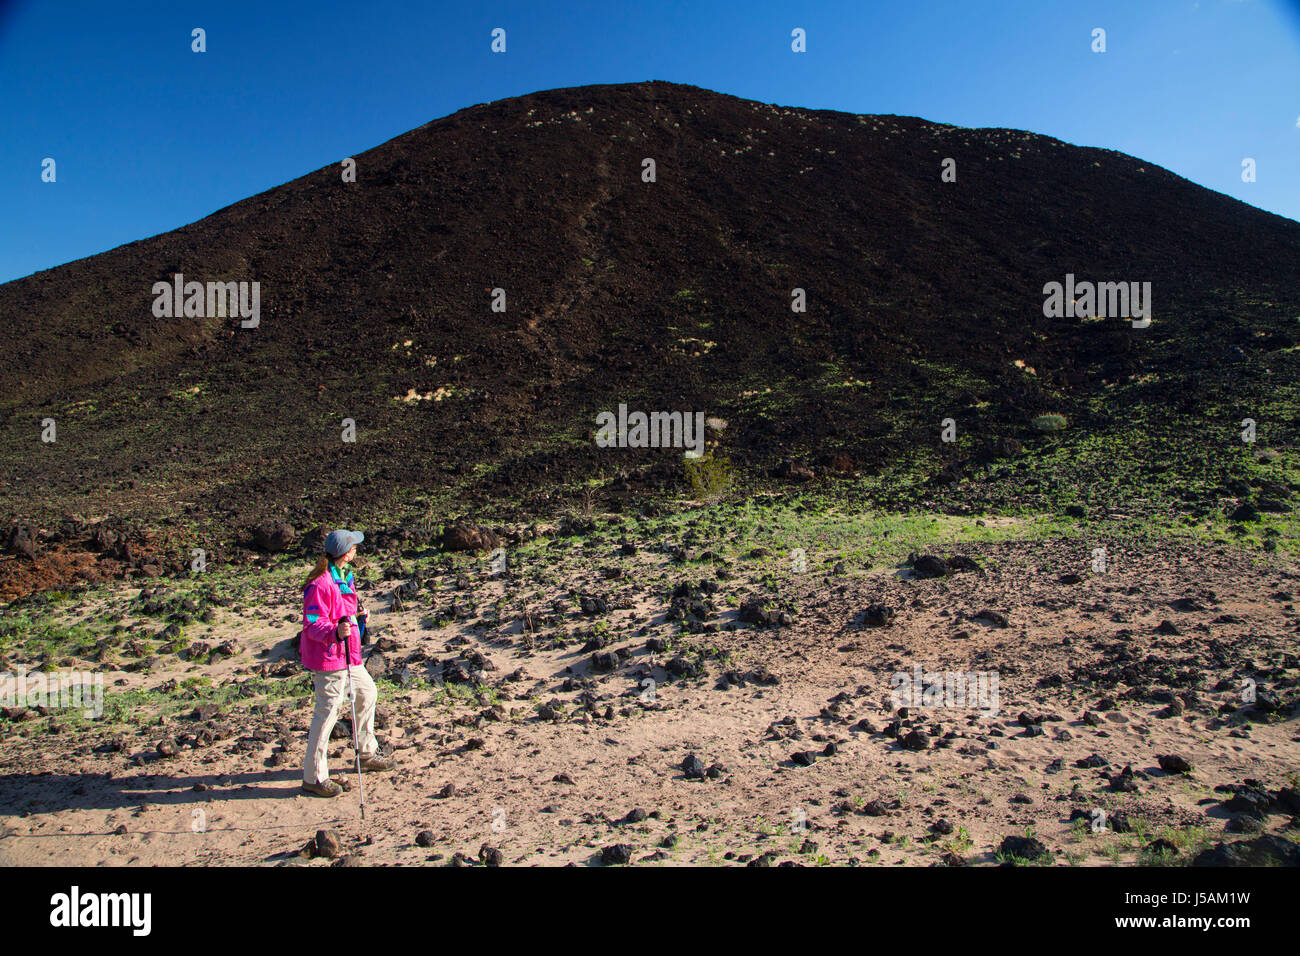 Desert Volcano Cinder Cone California Stock Photos \u0026 Desert ...